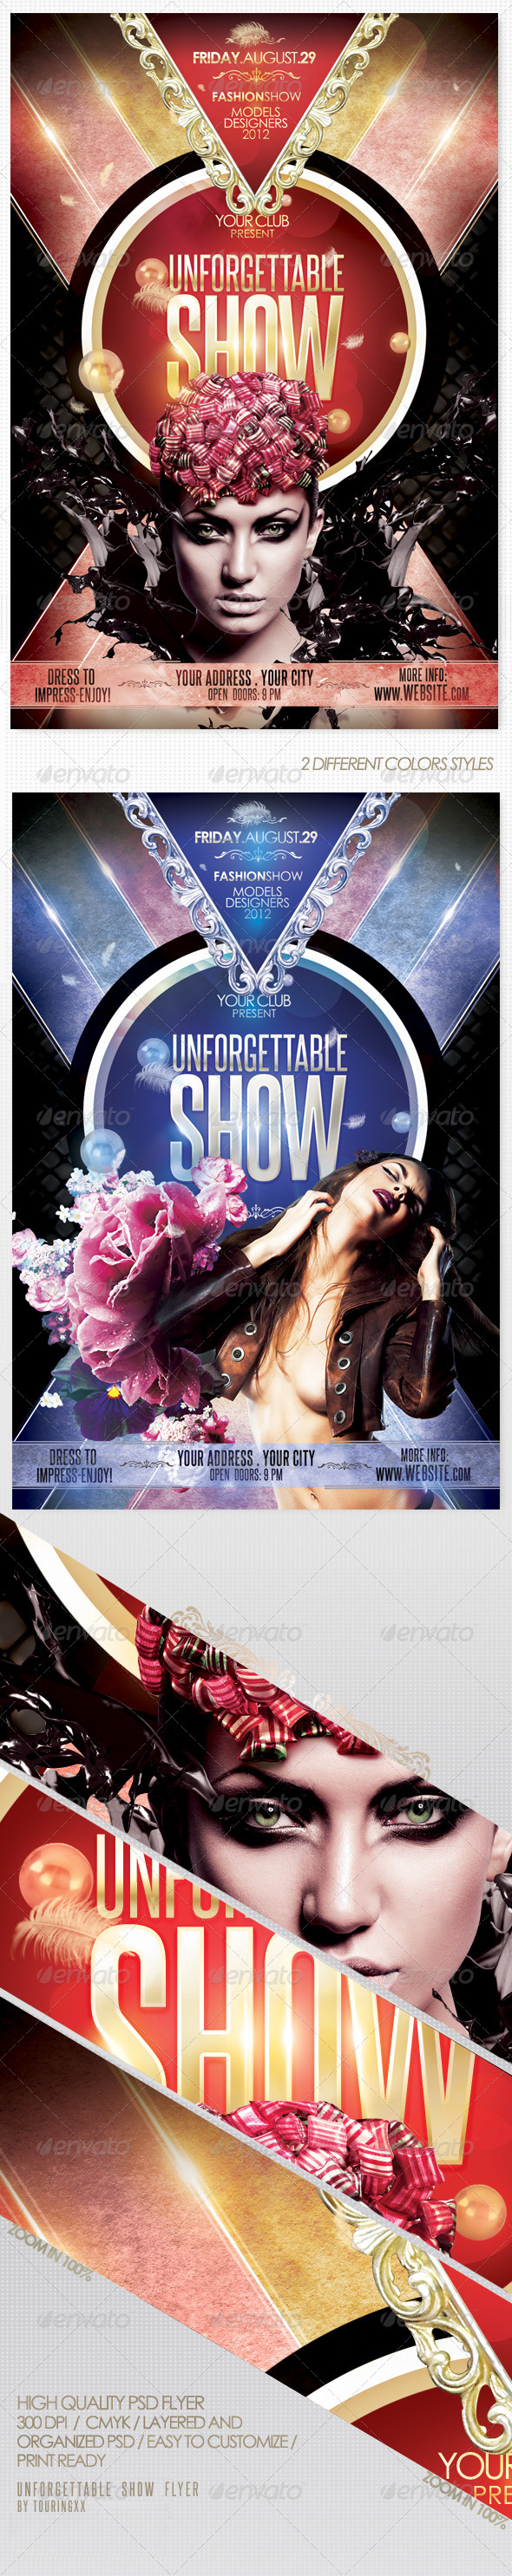 Unforgettable Show Flyer Template - Clubs & Parties Events